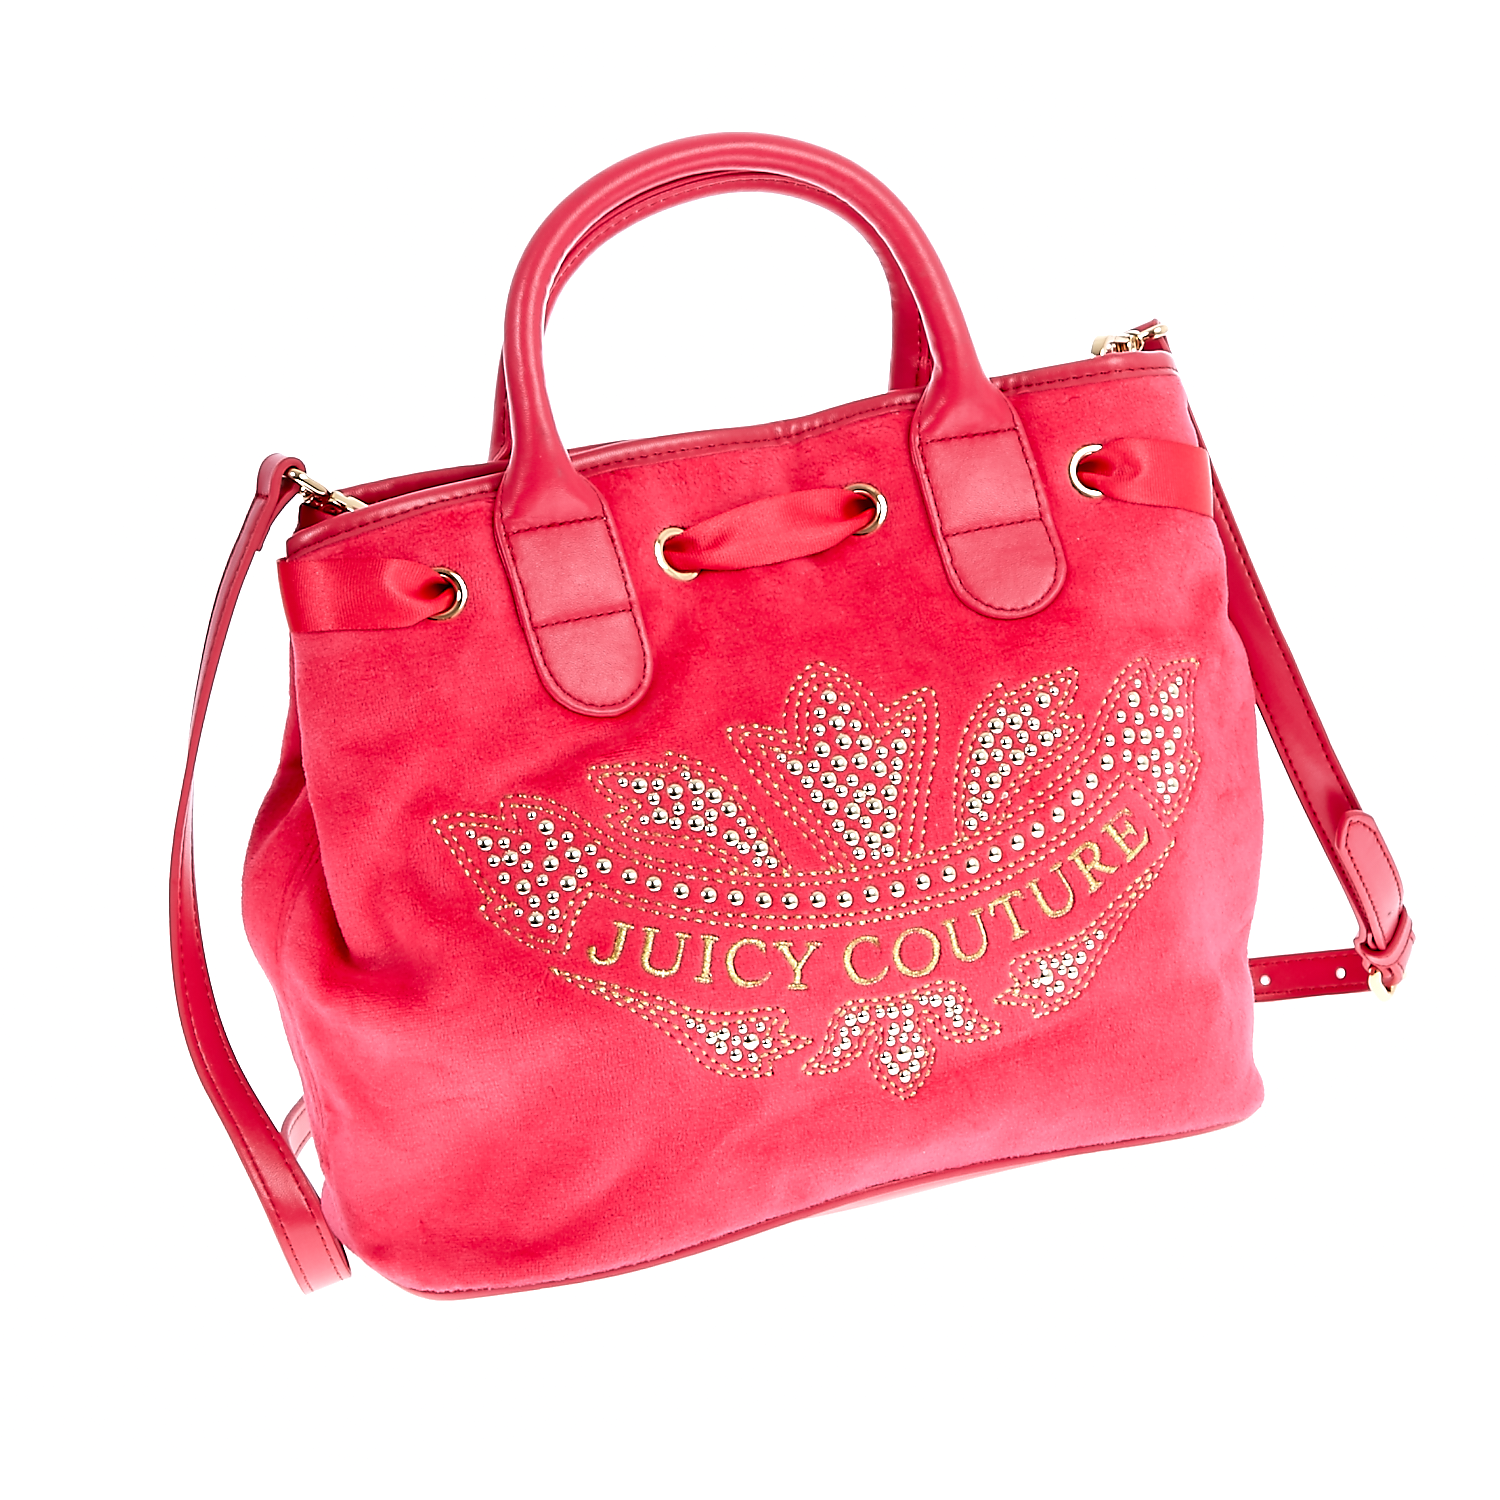 JUICY COUTURE - Γυναικεία τσάντα Juicy Couture κόκκινη-φούξια γυναικεία αξεσουάρ τσάντες σακίδια χειρός